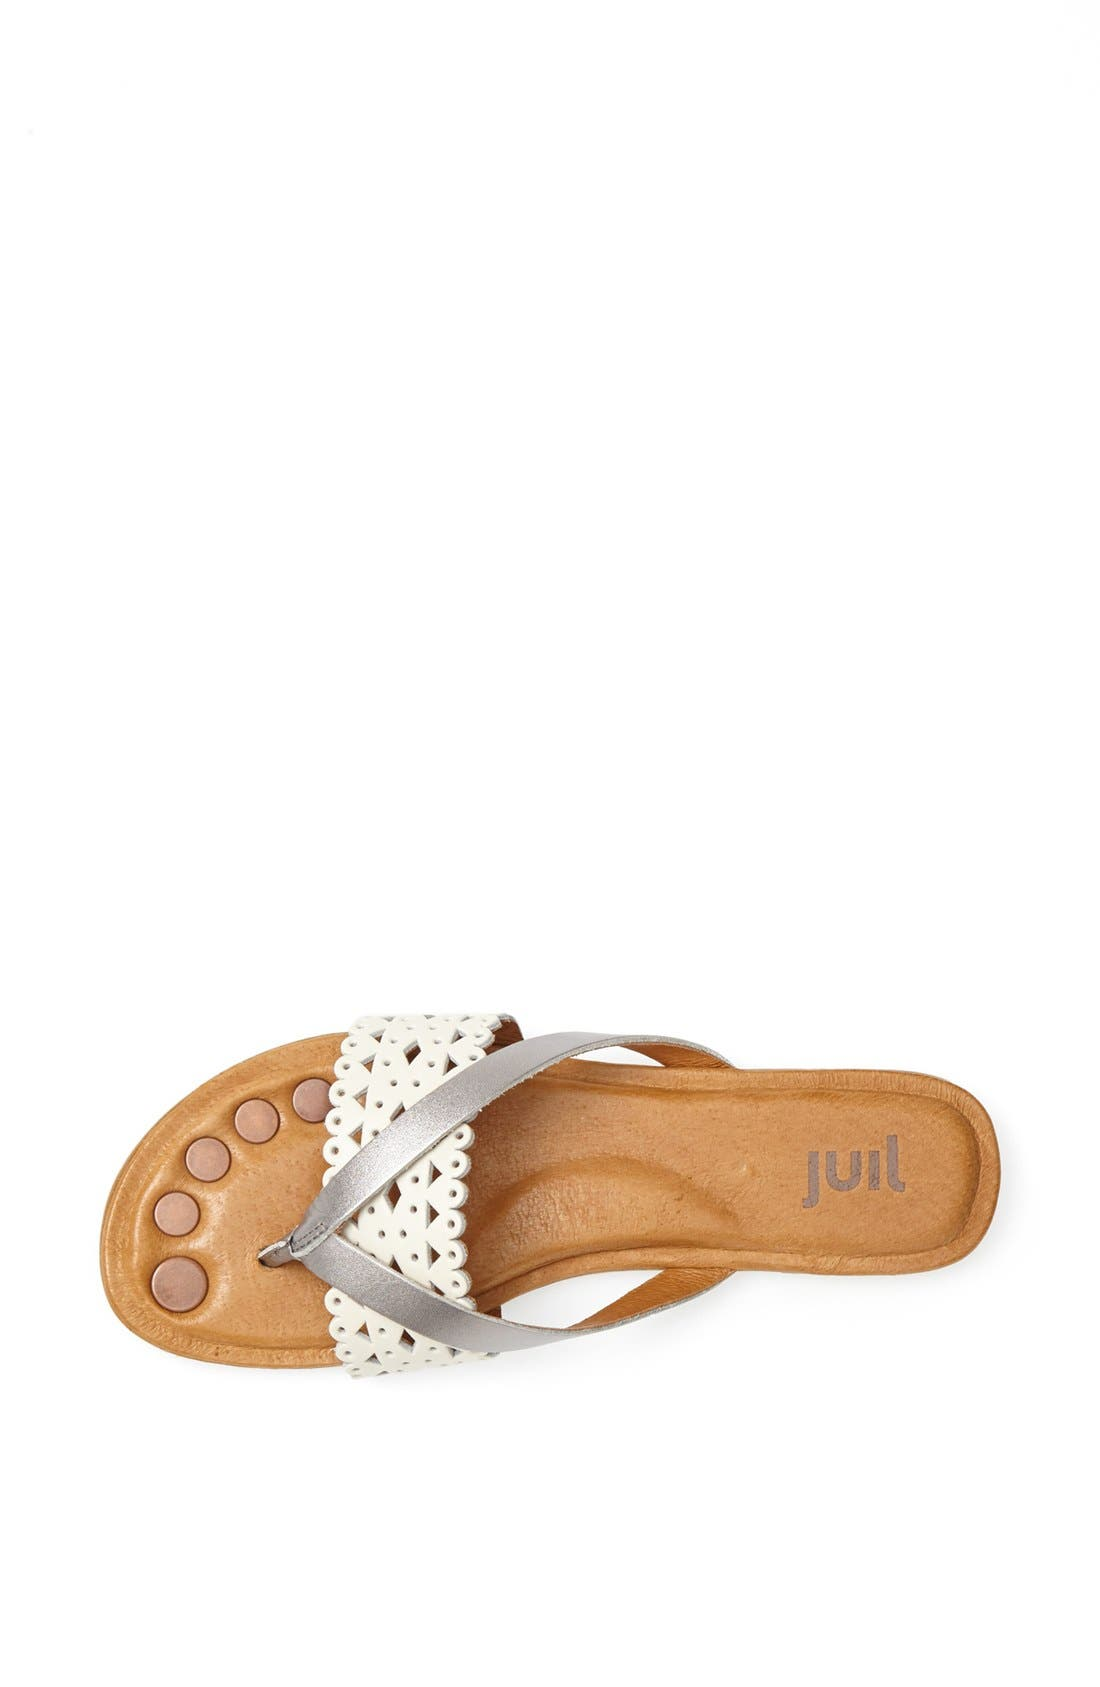 Alternate Image 2  - Juil 'Dalli' Leather Sandal